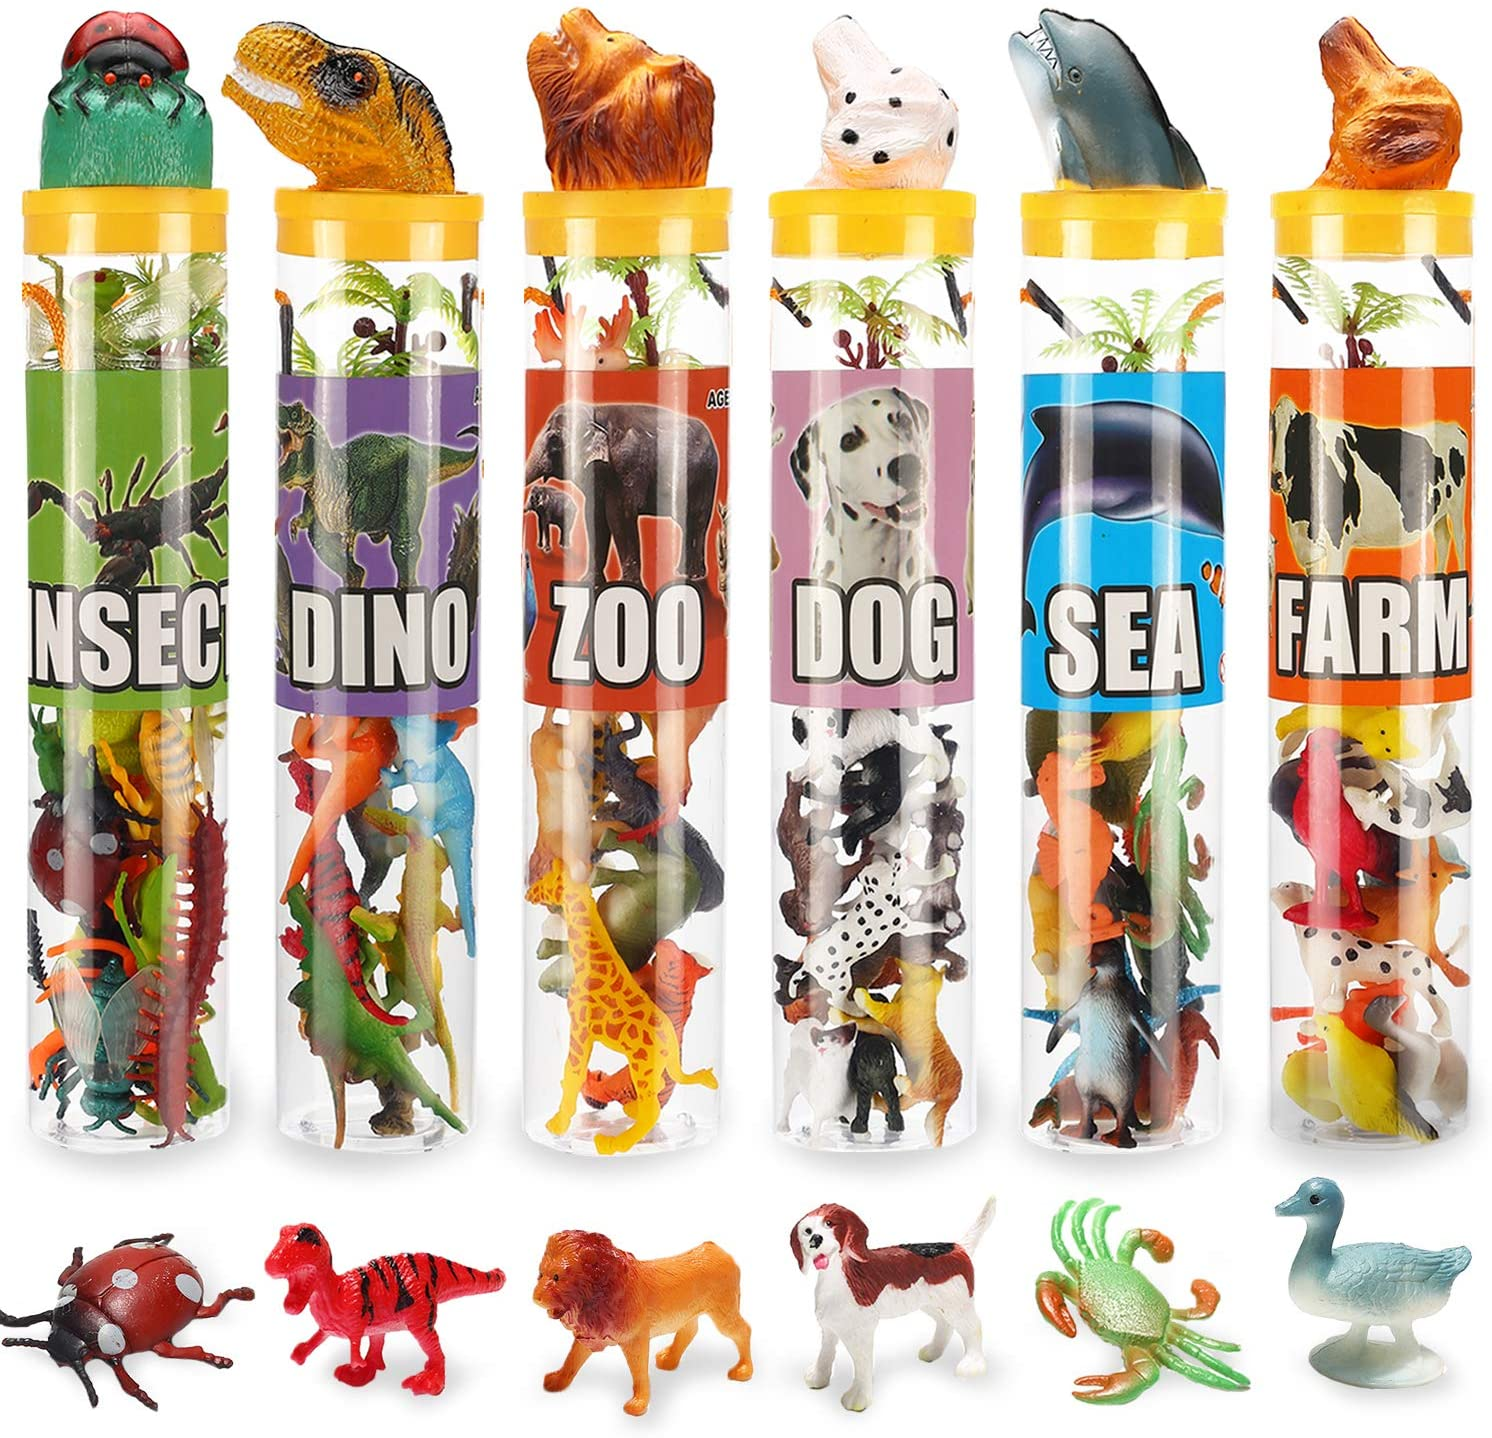 82 Piece Animal Toy, Assorted Mini Dinosaur Insect Ocean Sea Animal Farm Animal Jungle Animal Dog Figure, Realistic Vinyl Plastic Zoo Play Set, Small Toys for Sensory Bin Cupcake Topper Party Favors